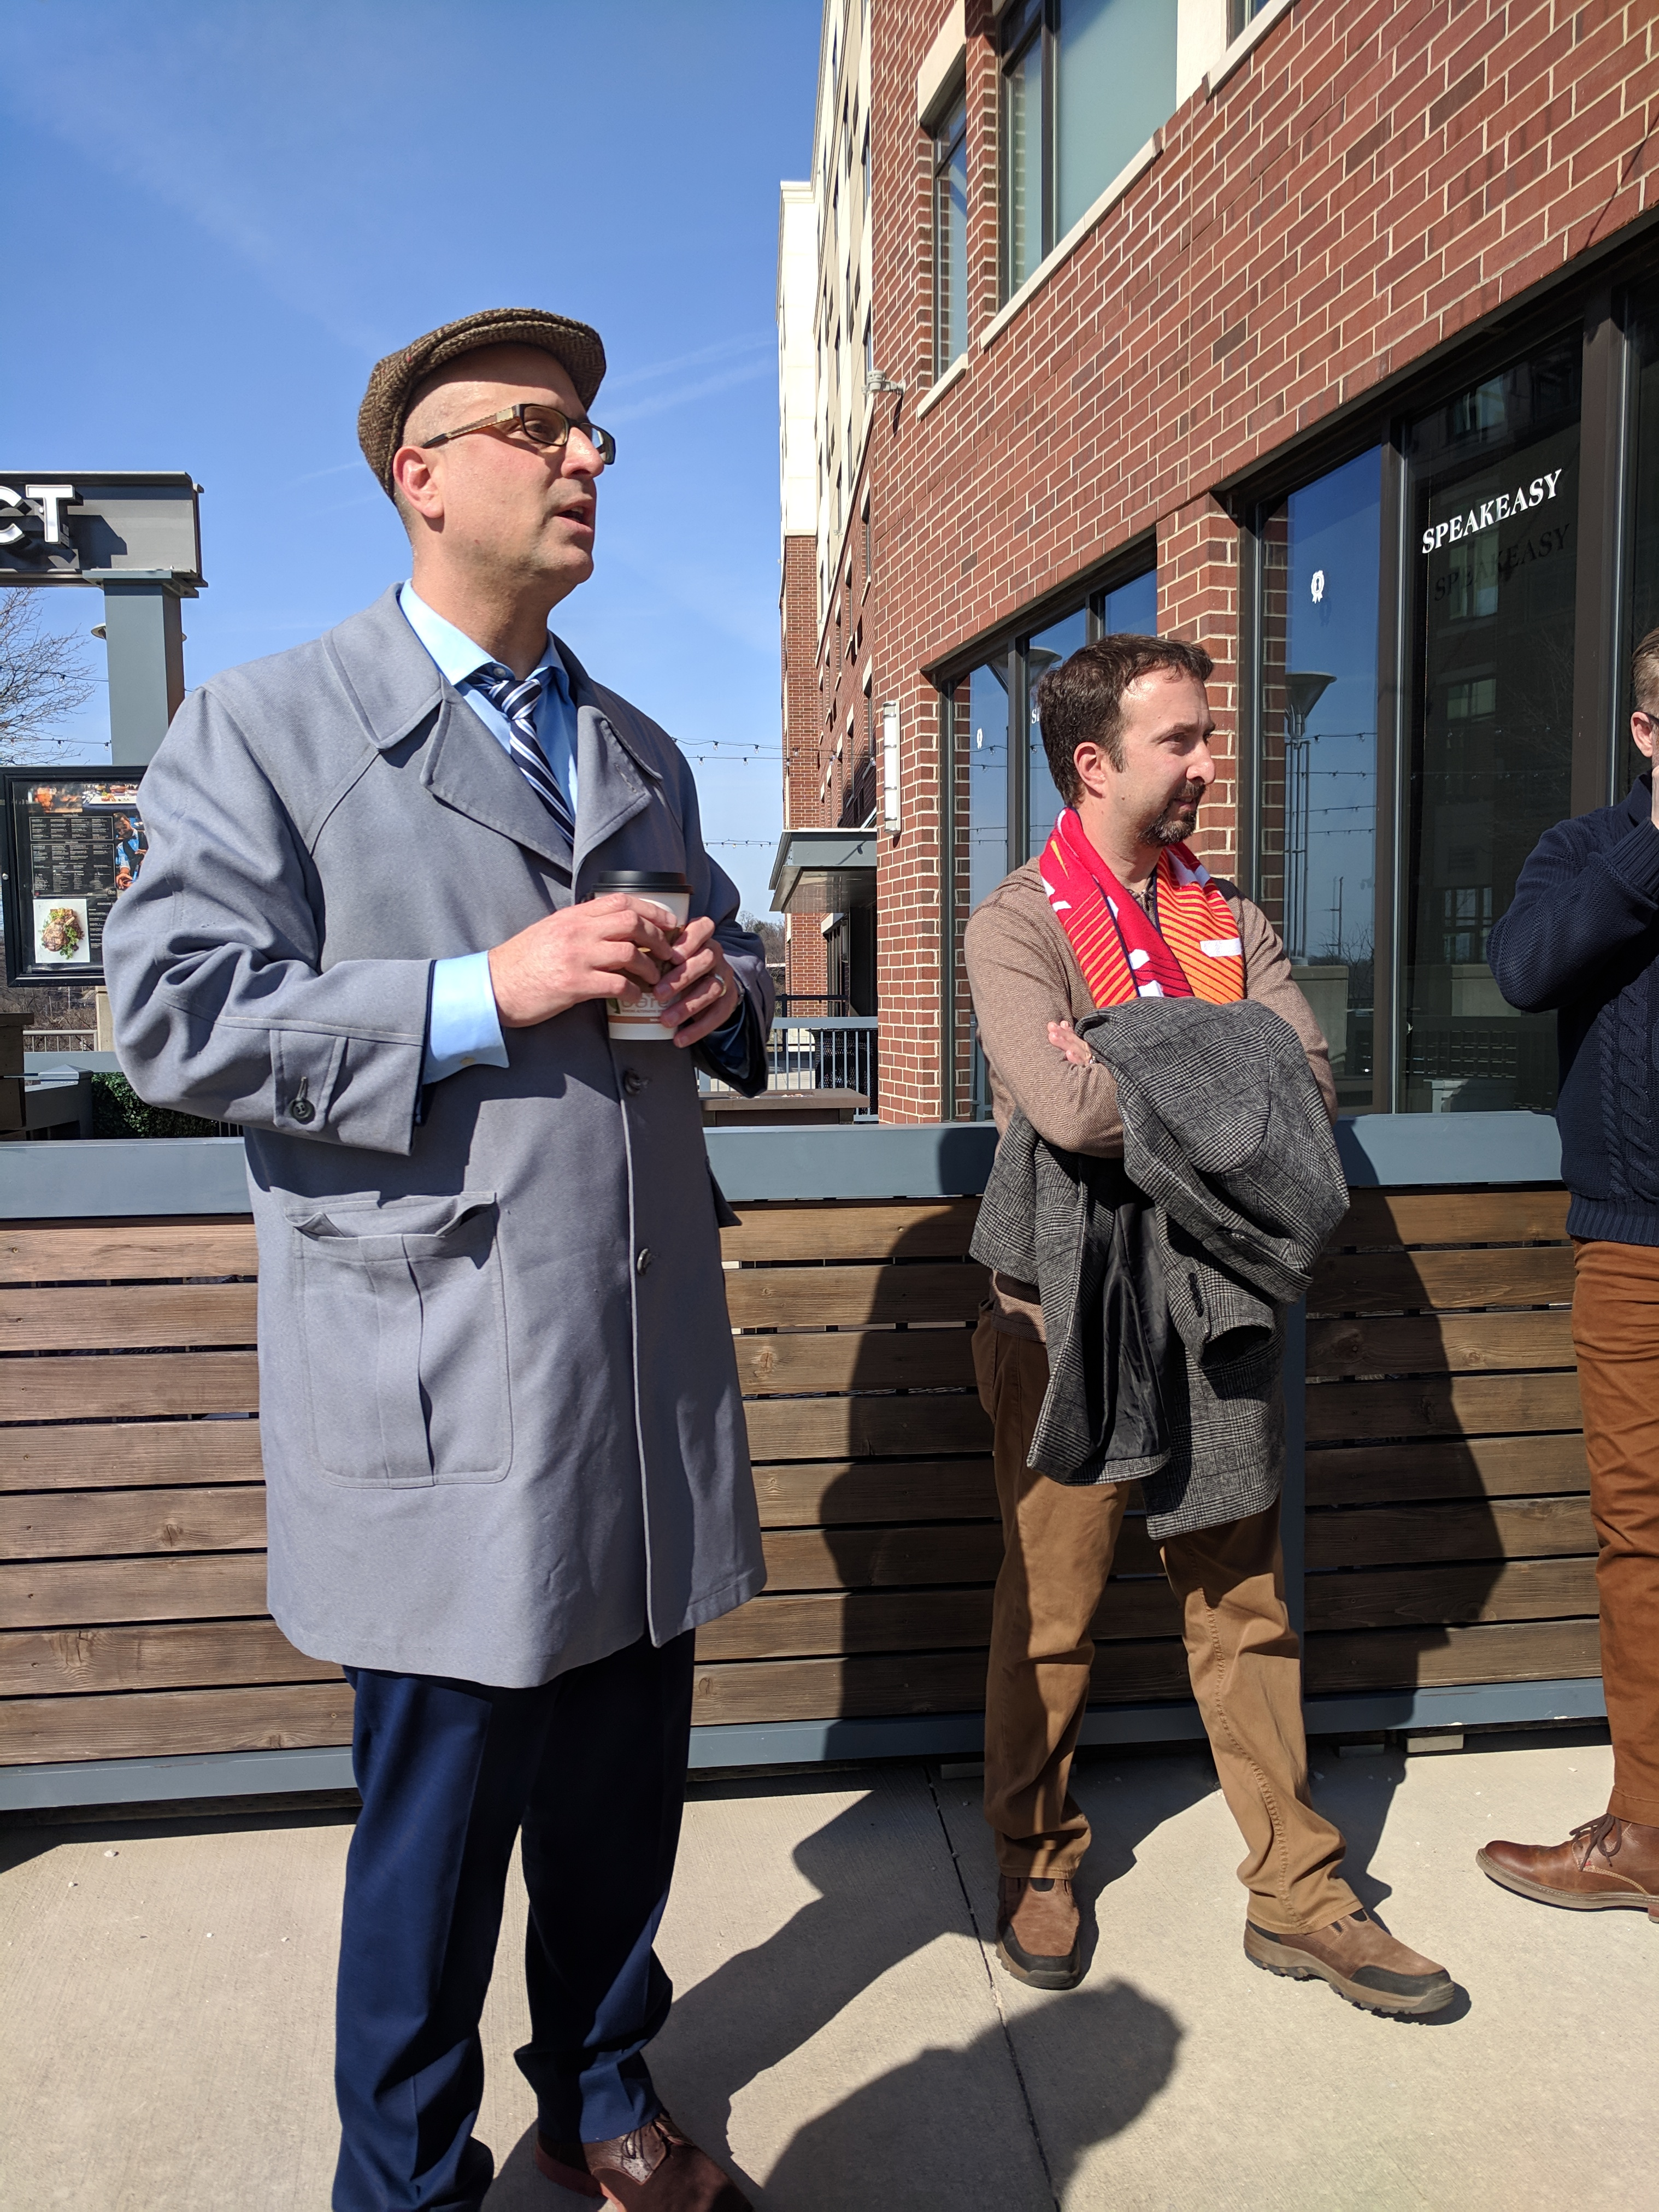 Jason Segedy, director of planning and urban development at the City of Akron, speaks to community of practice participants outside an Akron building.